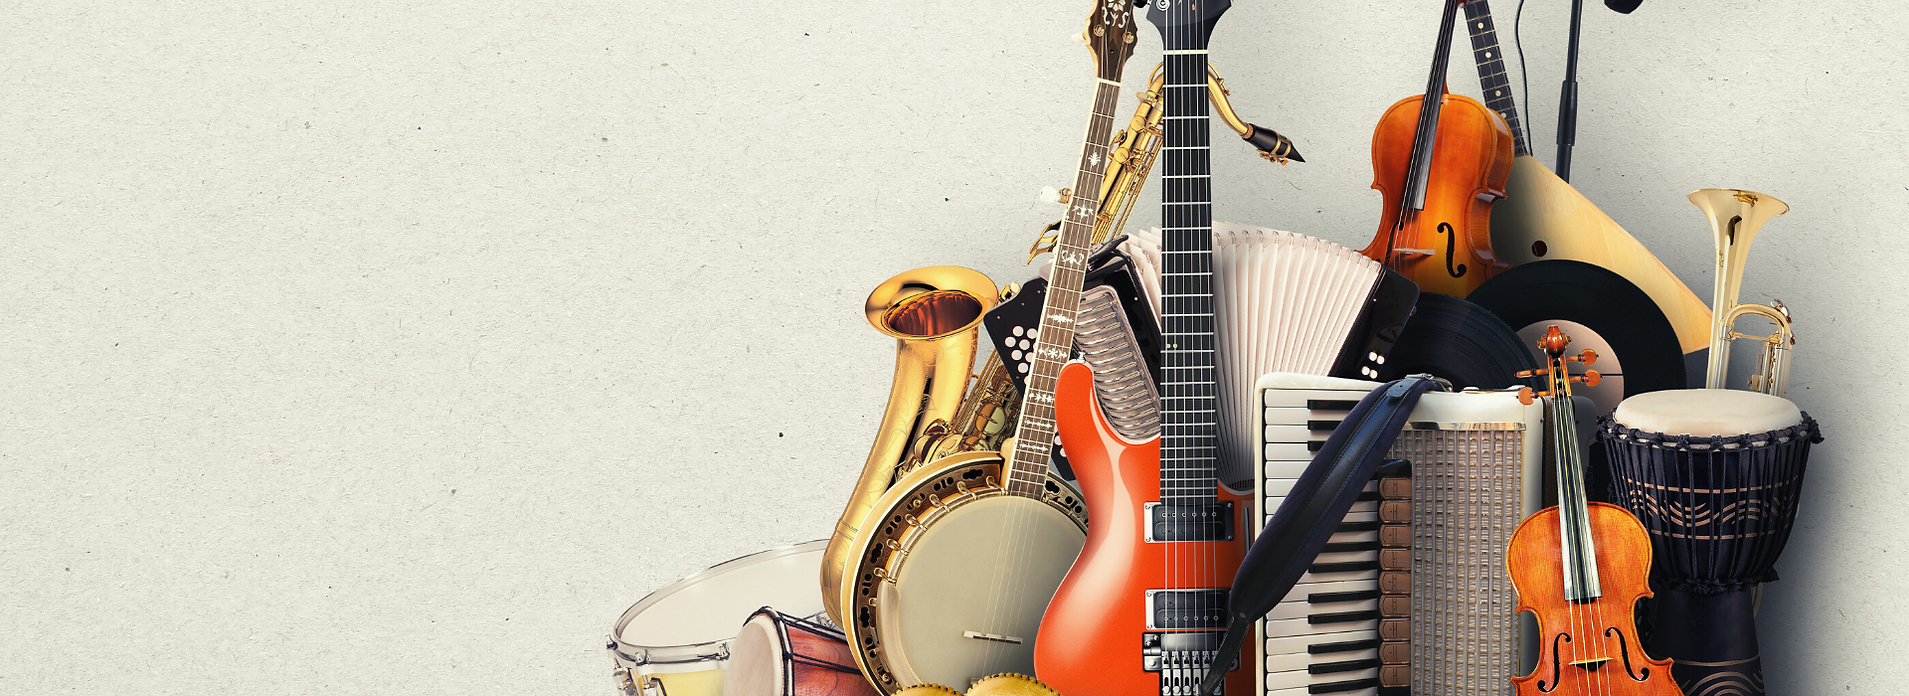 Buying Guide - Musical Instruments